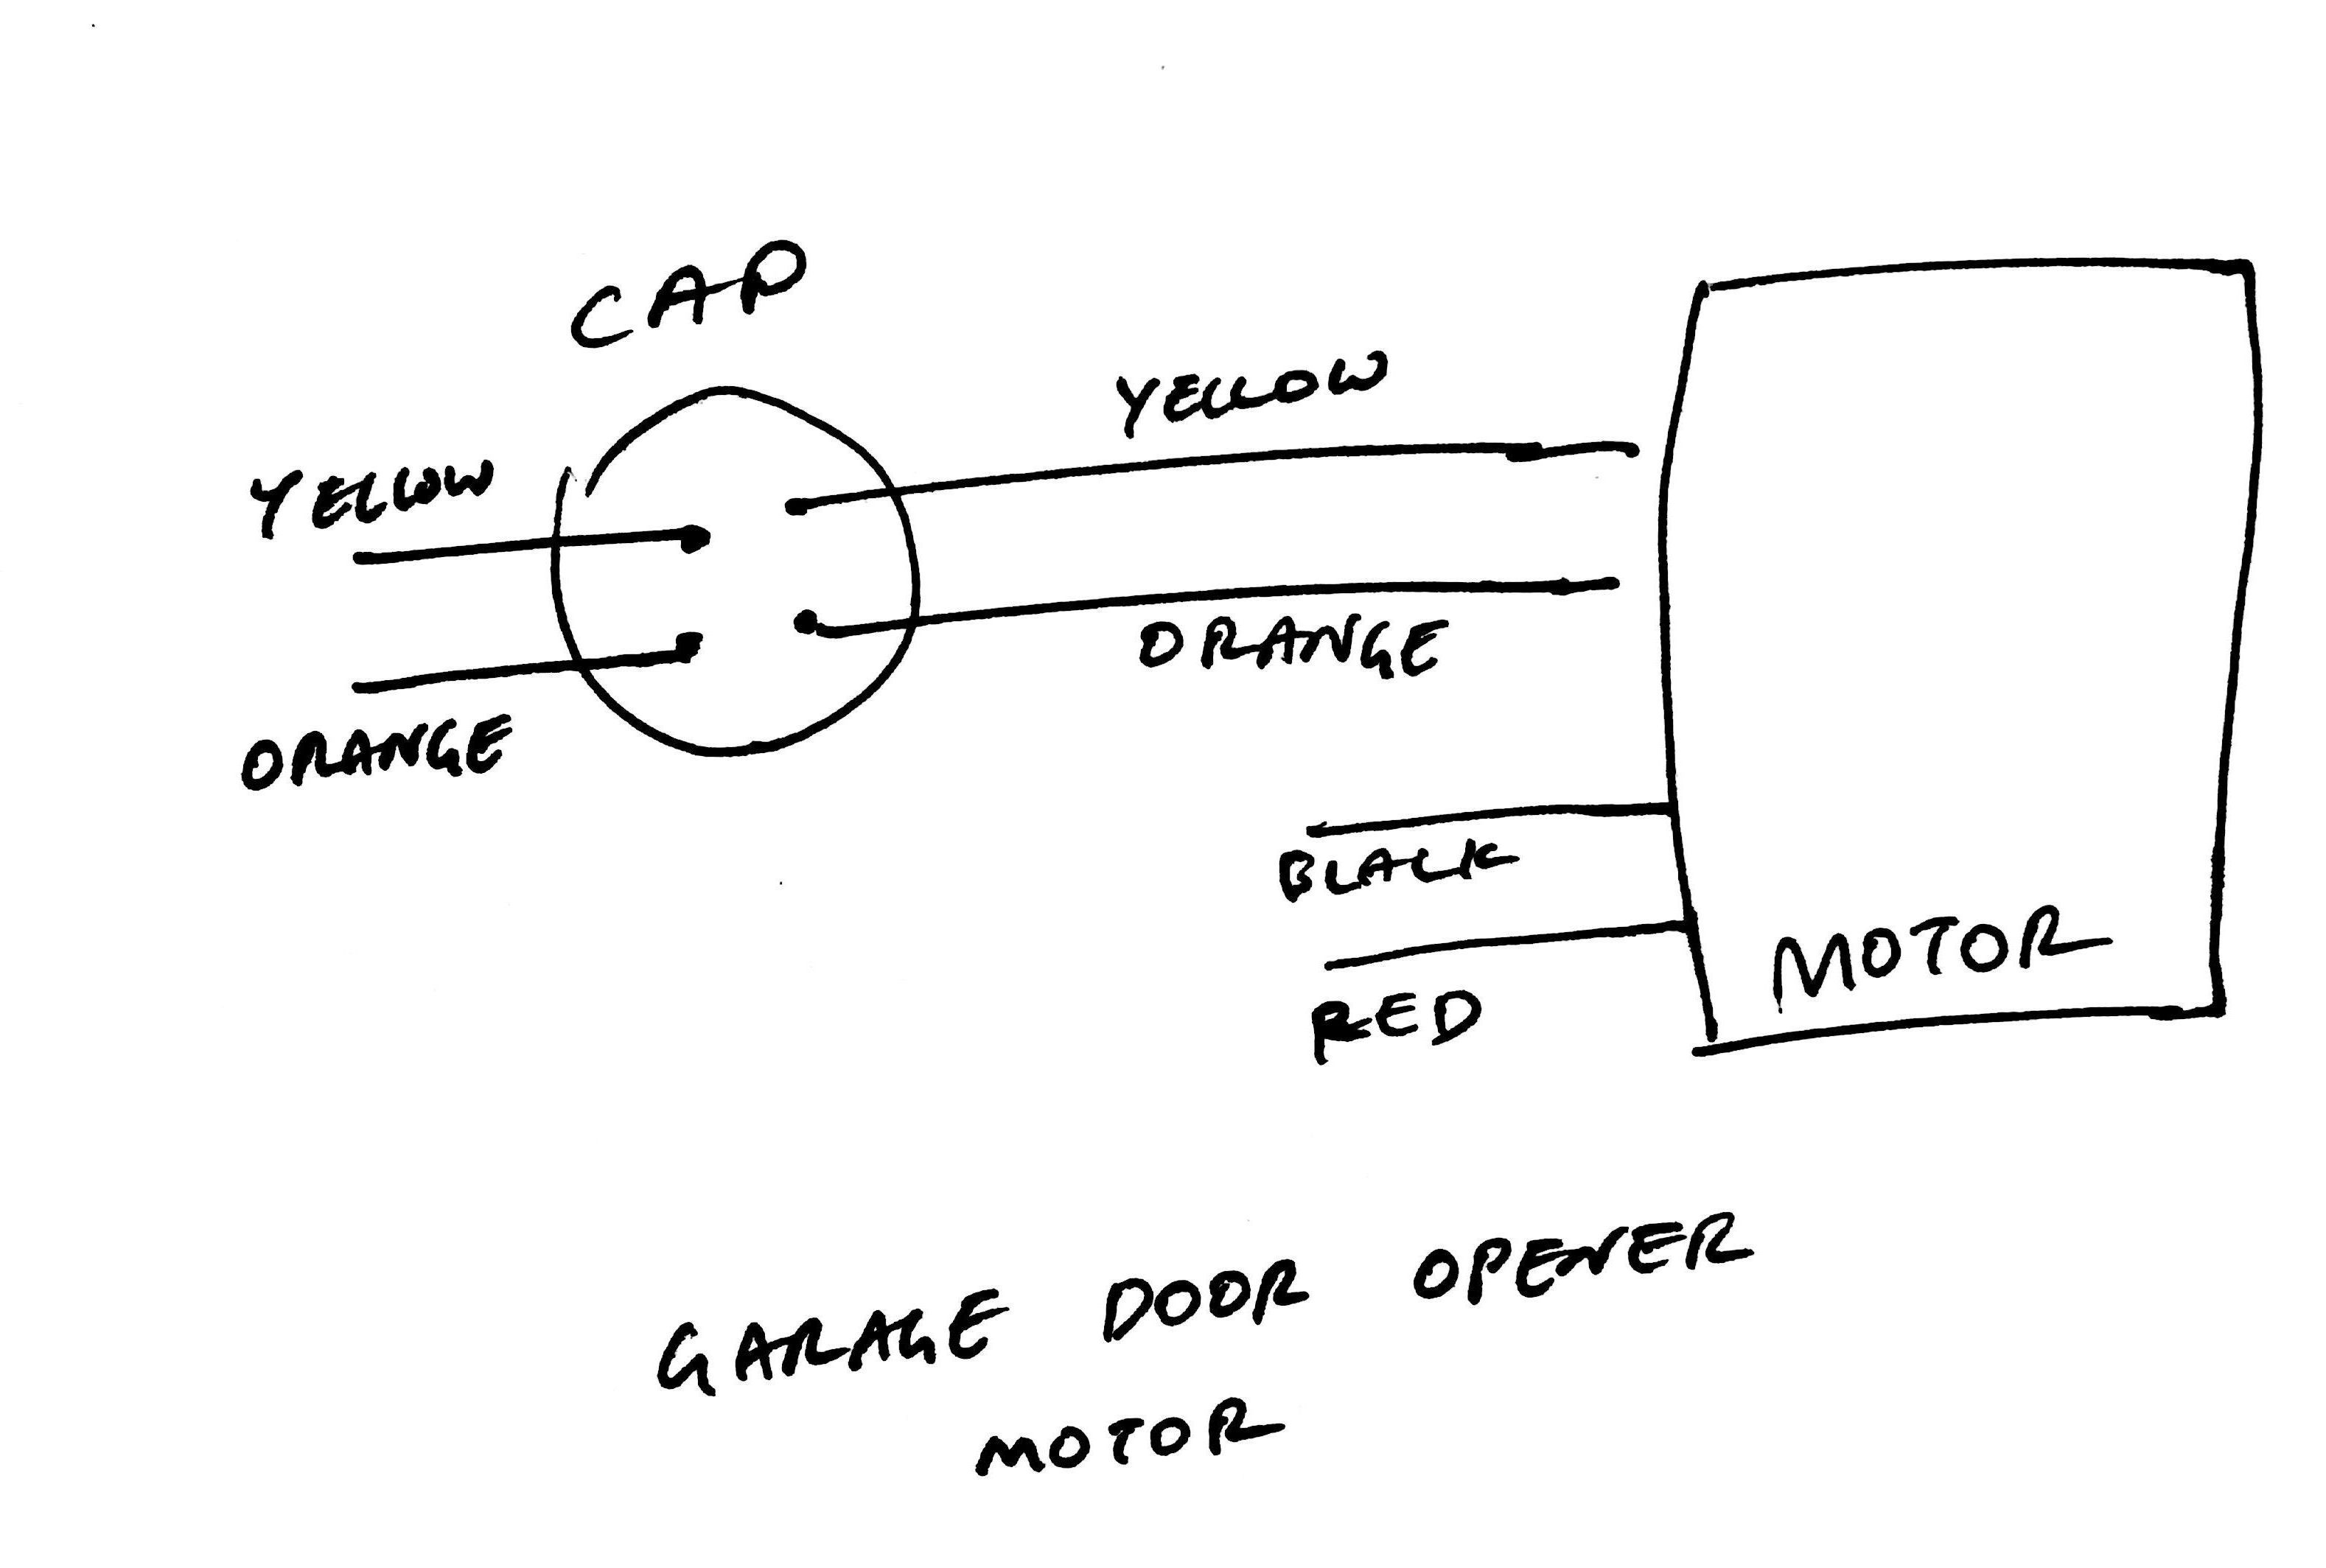 3 wire washing machine motor wiring diagram Collection-H Bridge Wiring For A 4 Wire AC Motor Electrical Engineering Noticeable Capacitor Diagram 7-j